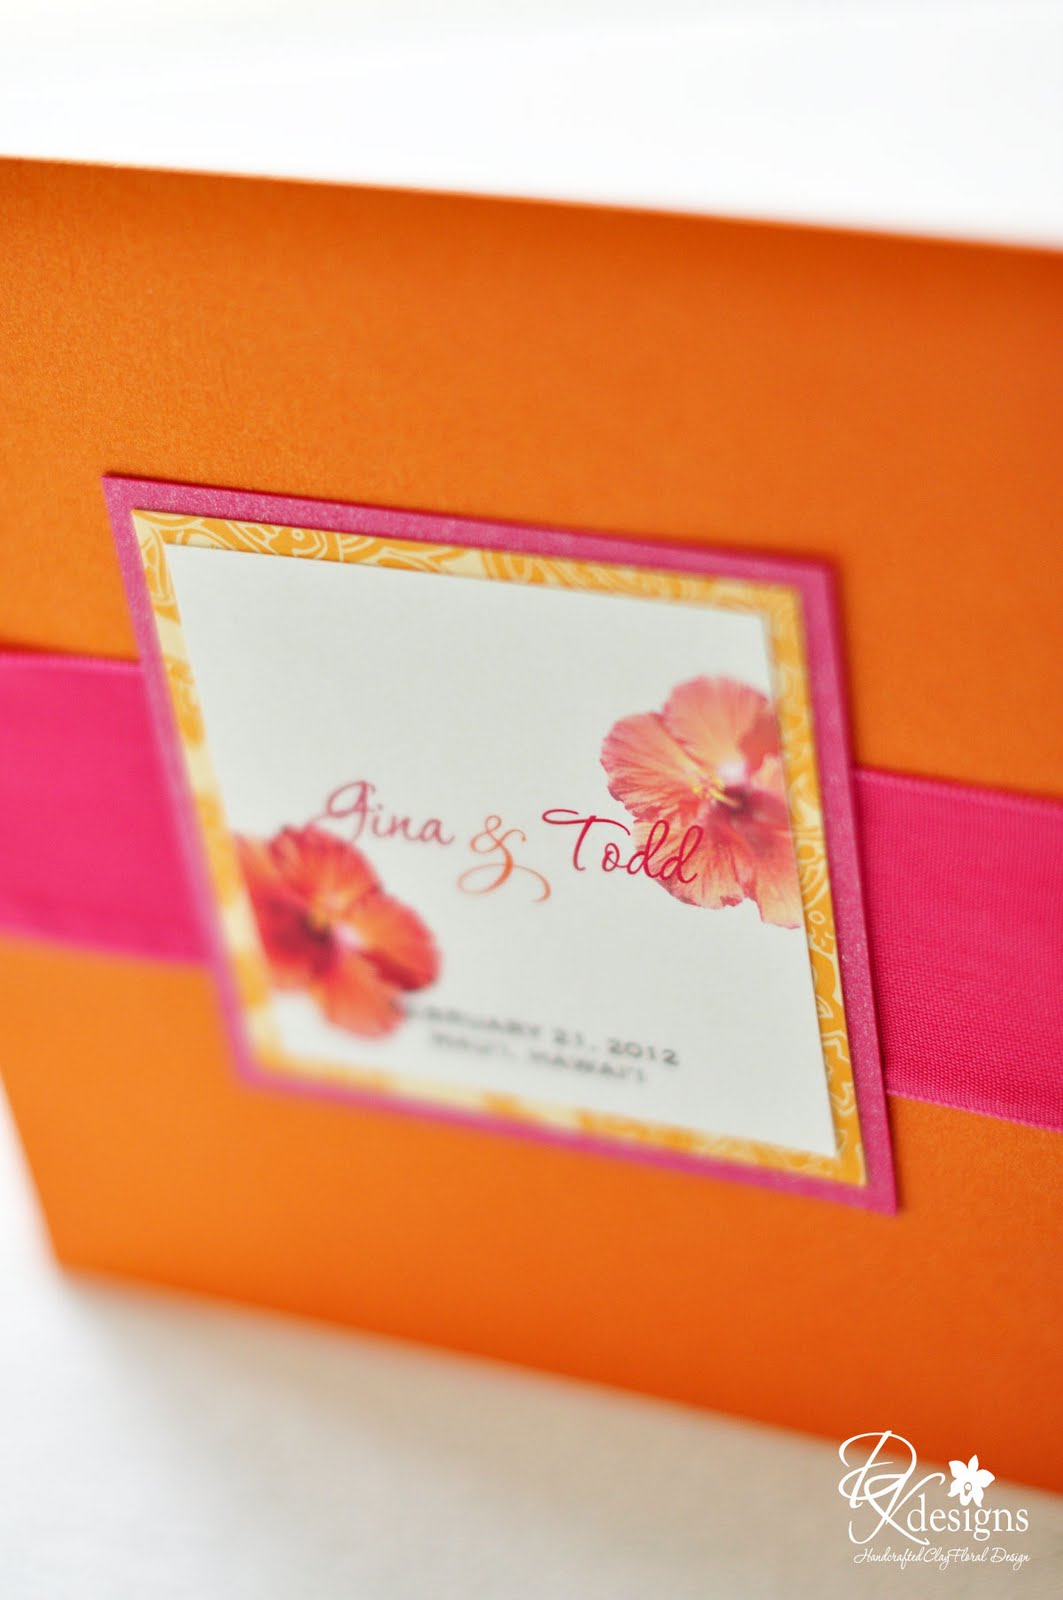 DK Designs: Orange and Pink Tropical Wedding Invitations